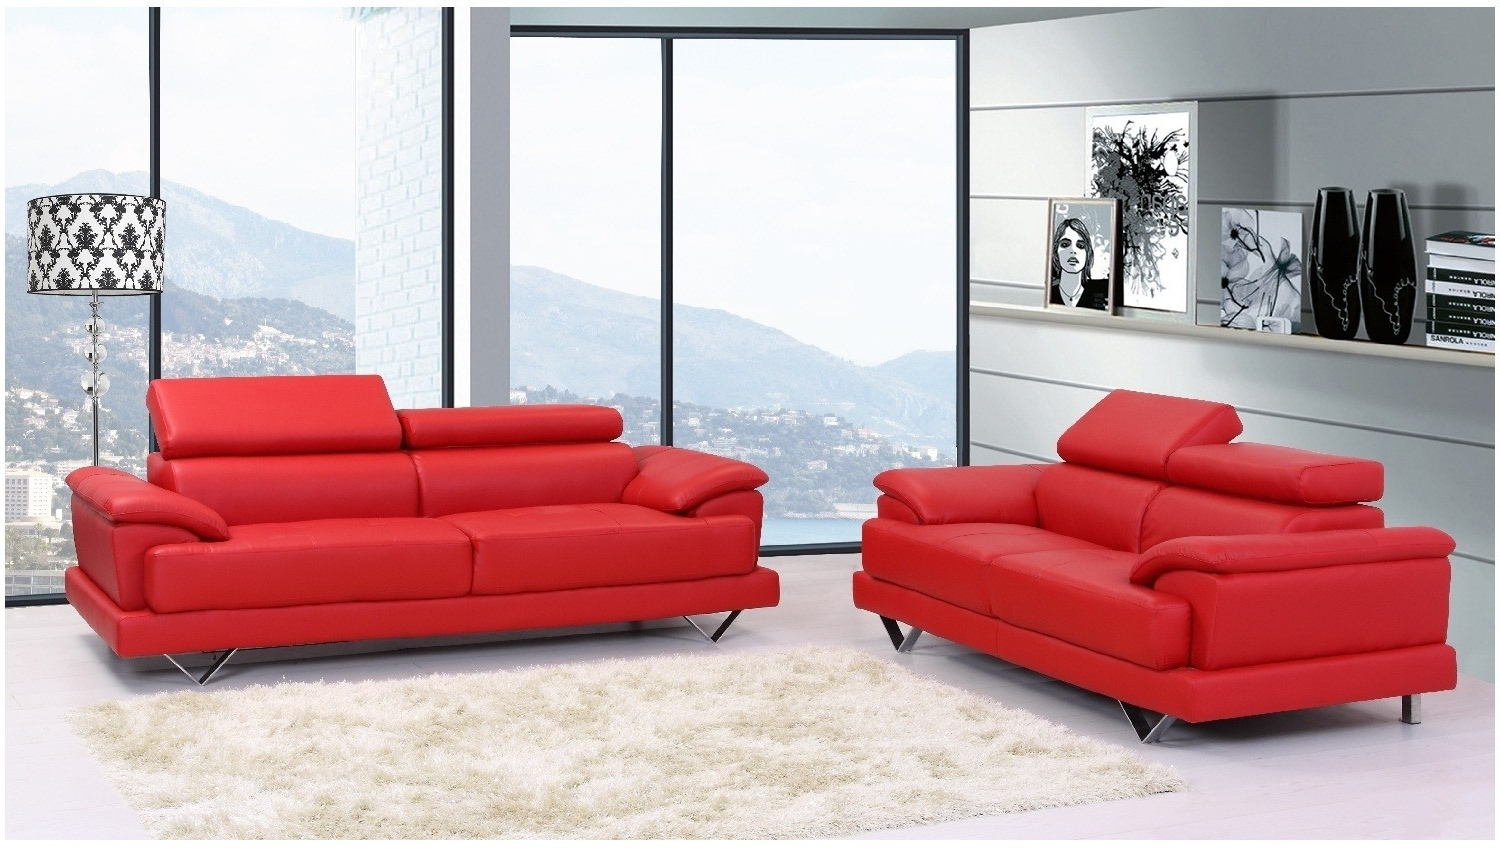 Red Leather Sofas Within Most Up To Date Perfect Red Leather Sofas 90 For Contemporary Sofa Inspiration (View 12 of 15)